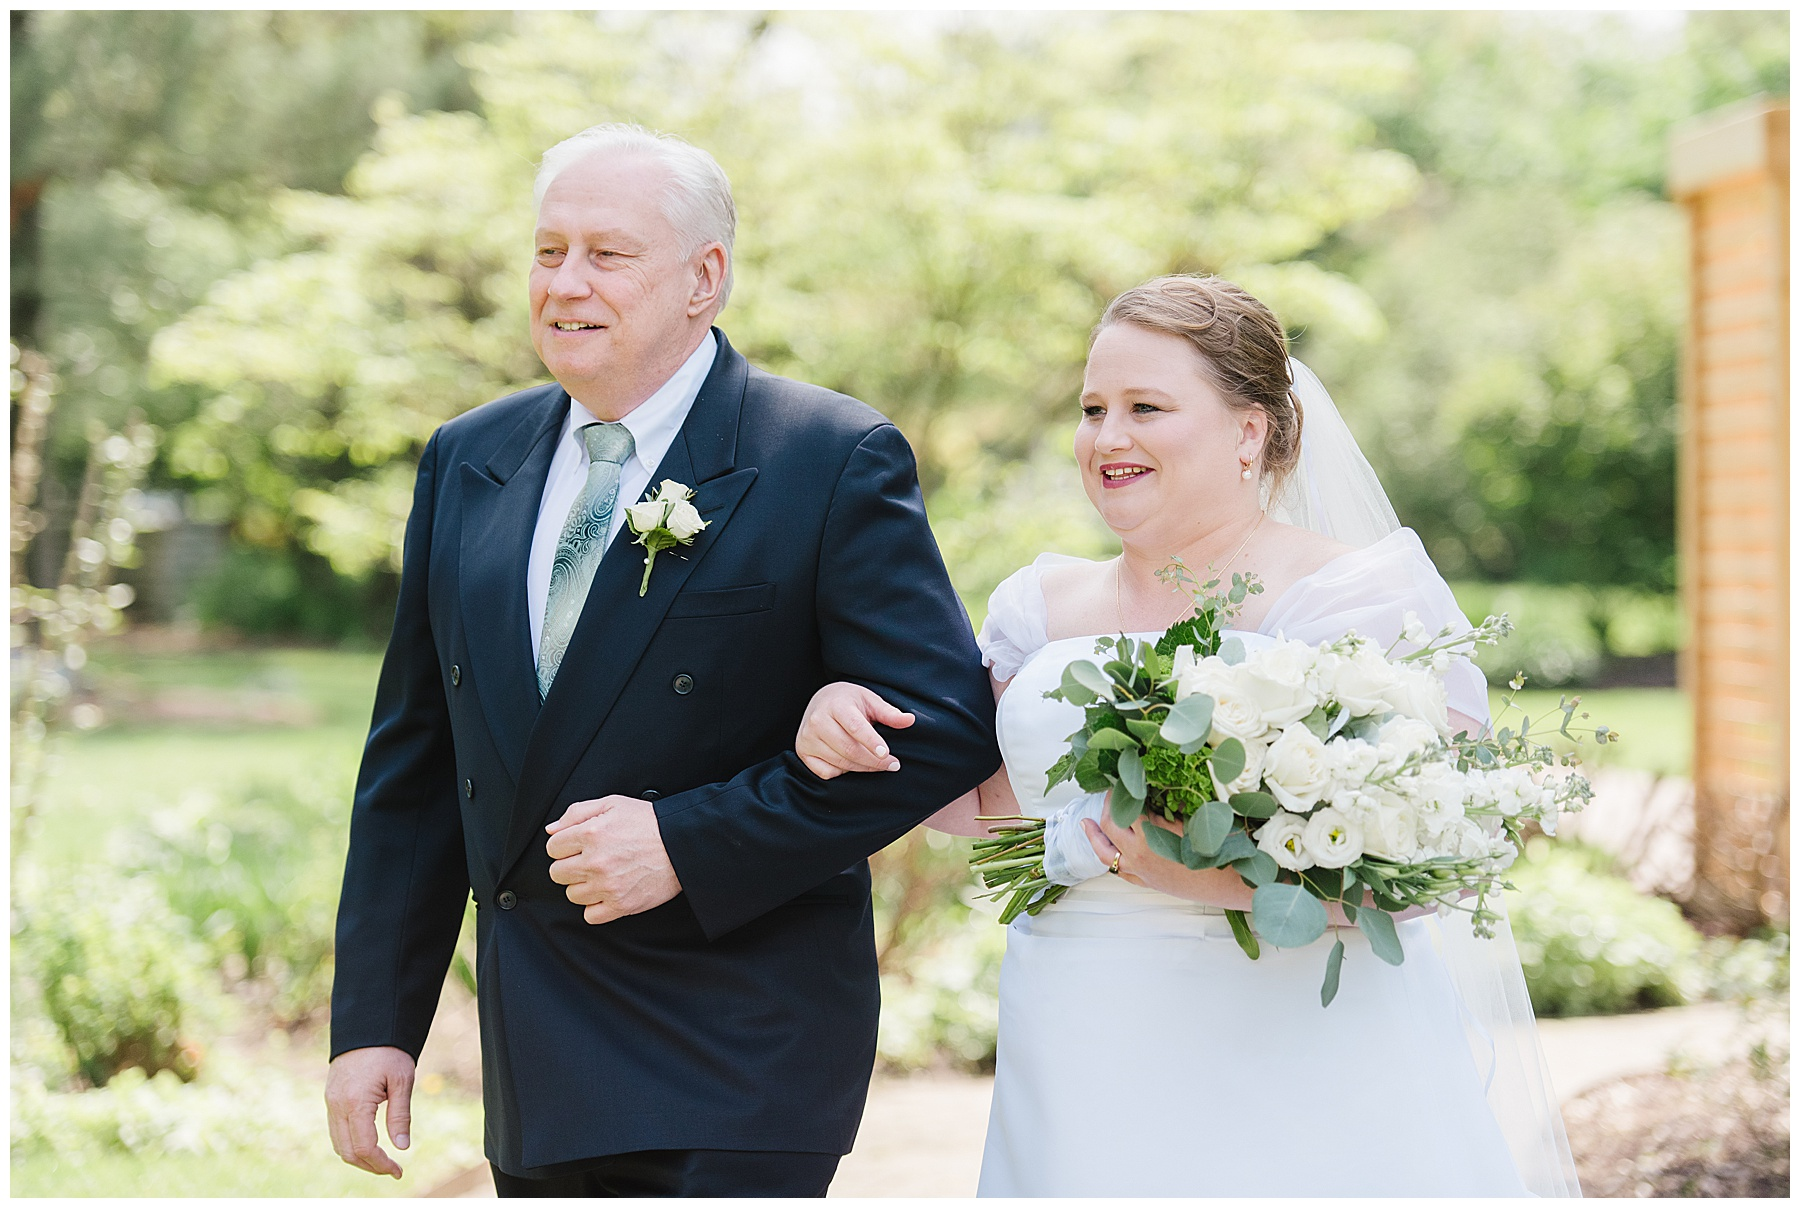 foster park fort wayne indiana wedding photographer_0206